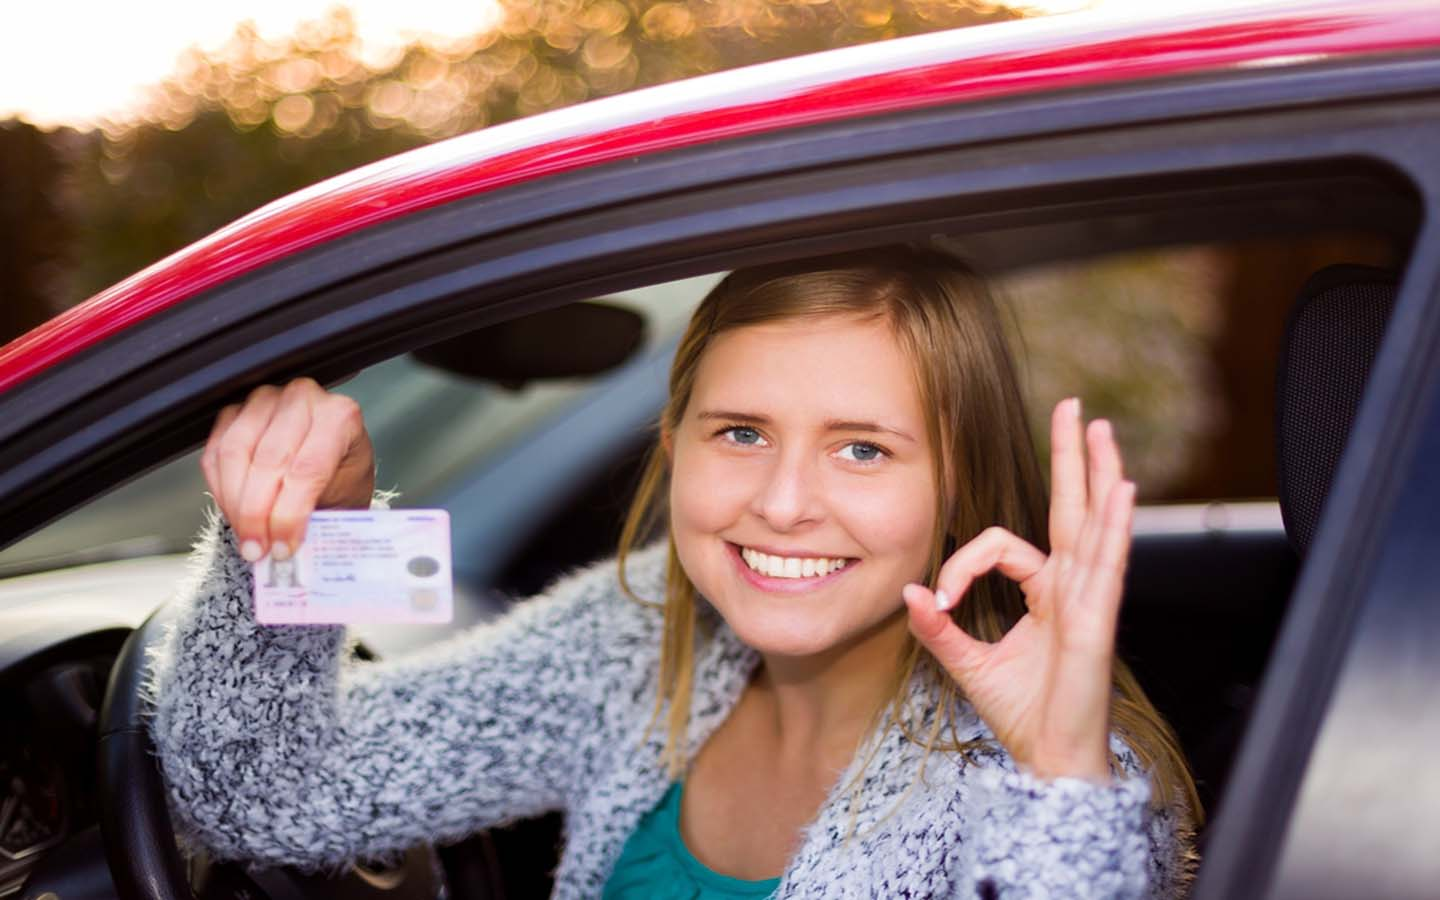 Girl with a driving license